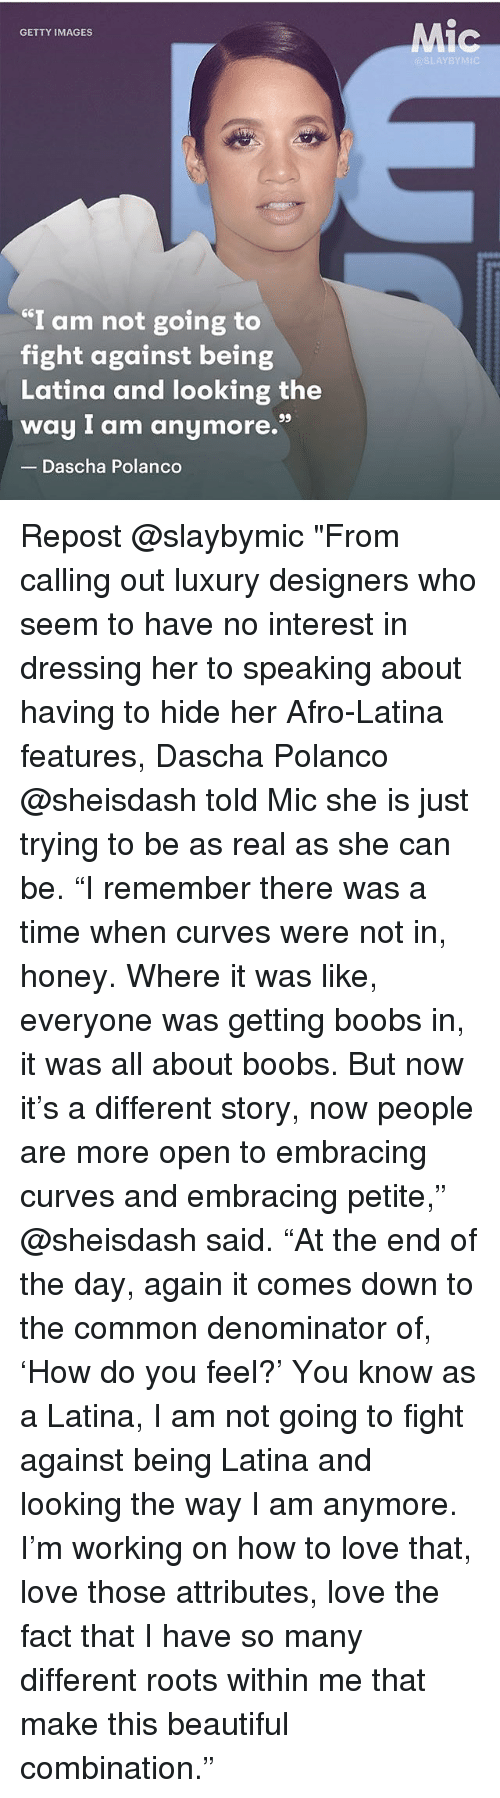 """Beautiful, Love, and Memes: Mic  GETTY IMAGES  @SLAYBYMIC  I am not going to  fight against being  Latina and looking the  way I am anymore.""""  Dascha Polanco Repost @slaybymic """"From calling out luxury designers who seem to have no interest in dressing her to speaking about having to hide her Afro-Latina features, Dascha Polanco @sheisdash told Mic she is just trying to be as real as she can be. """"I remember there was a time when curves were not in, honey. Where it was like, everyone was getting boobs in, it was all about boobs. But now it's a different story, now people are more open to embracing curves and embracing petite,"""" @sheisdash said. """"At the end of the day, again it comes down to the common denominator of, 'How do you feel?' You know as a Latina, I am not going to fight against being Latina and looking the way I am anymore. I'm working on how to love that, love those attributes, love the fact that I have so many different roots within me that make this beautiful combination."""""""